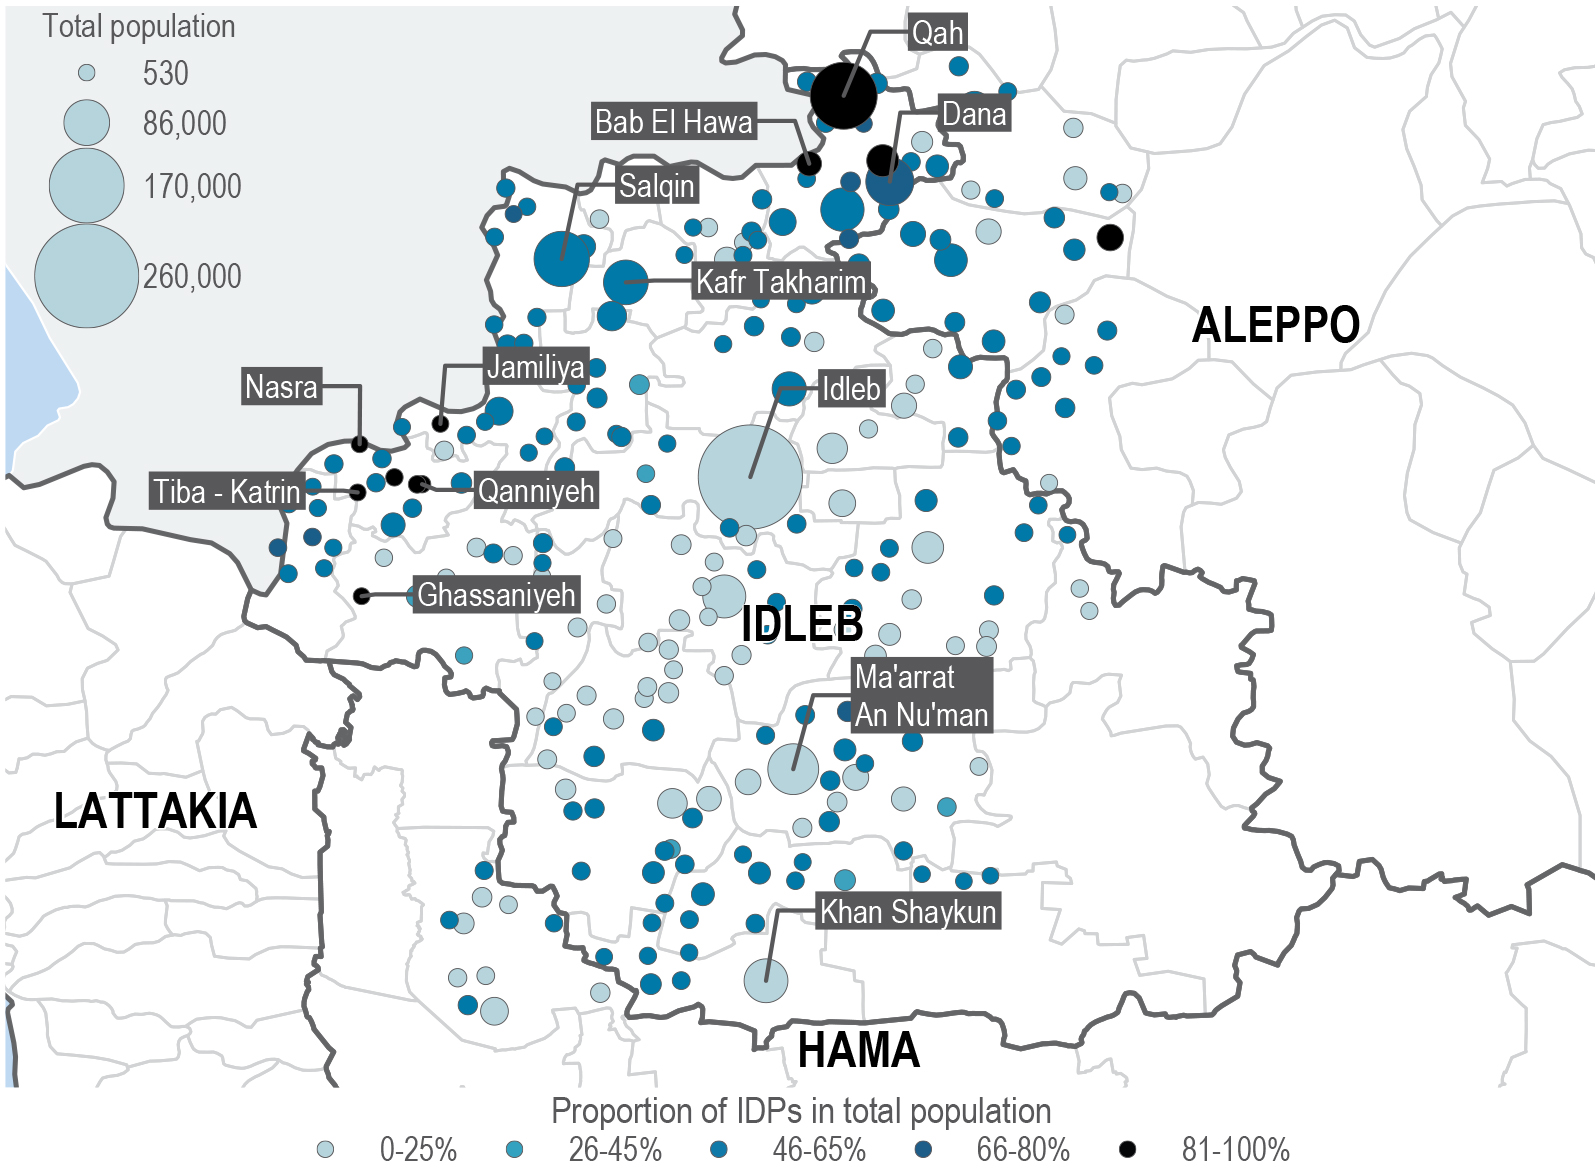 Proportion of internally displaced persons of total population in Idleb and surrounding areas in Syria.